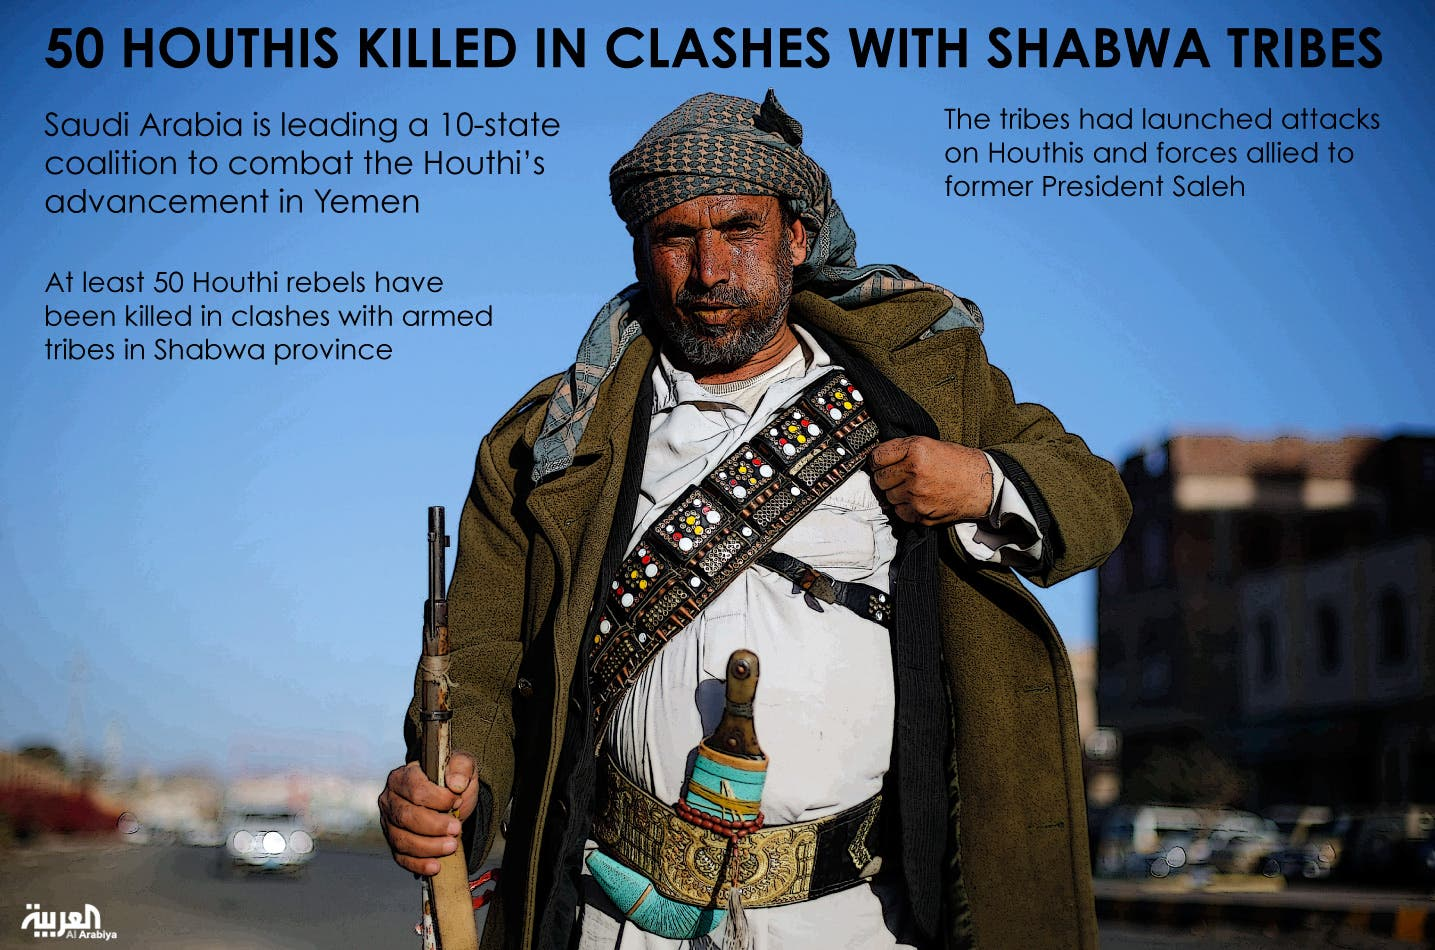 Infographic: 50 Houthis killed in clashes with Shabwa tribes